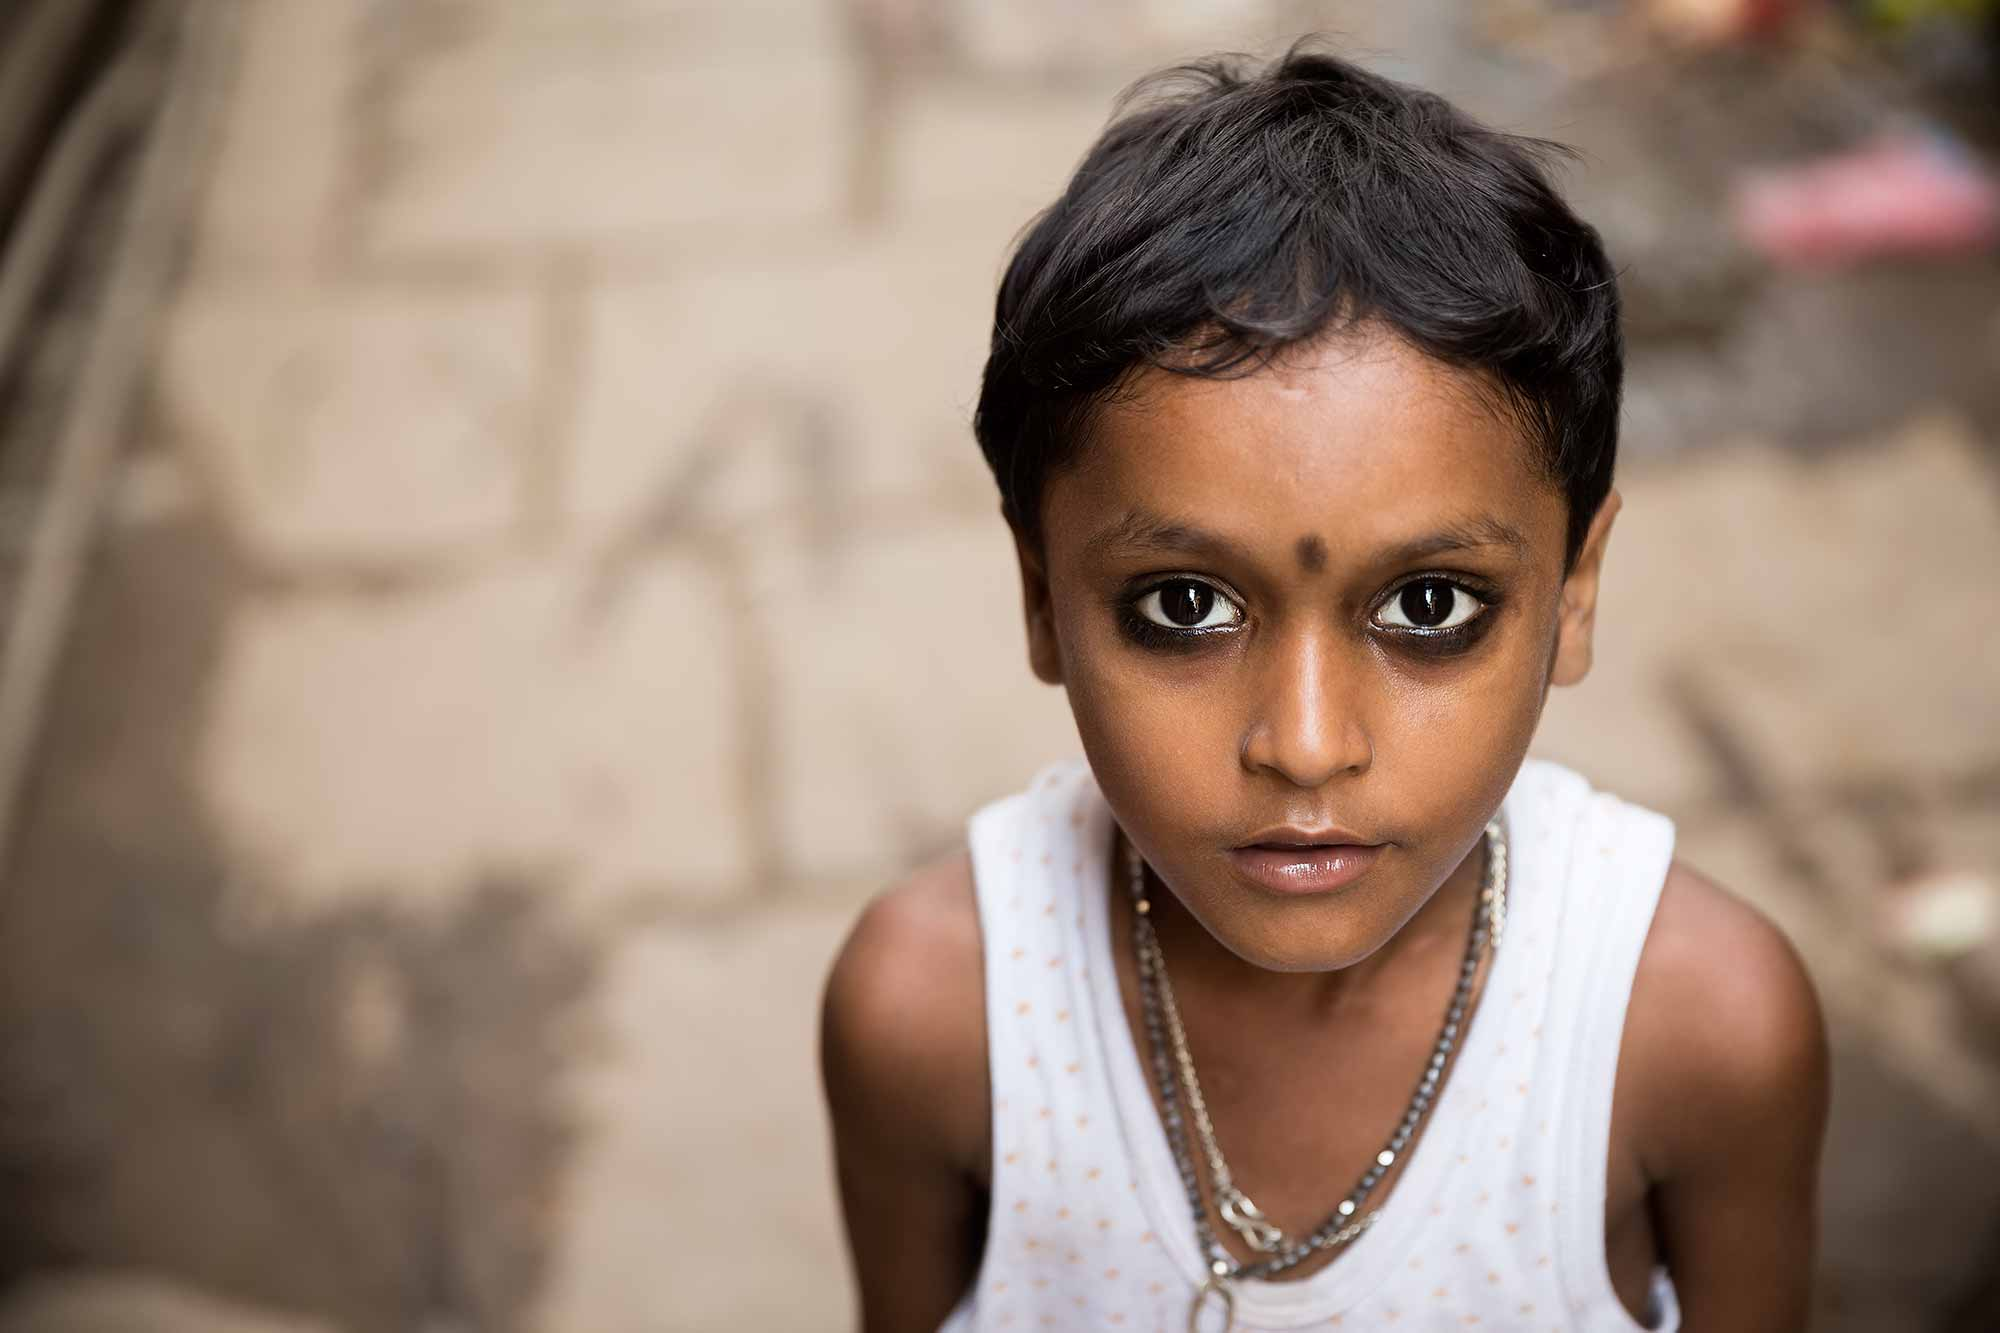 portrait-girl-varanasi-streets-india